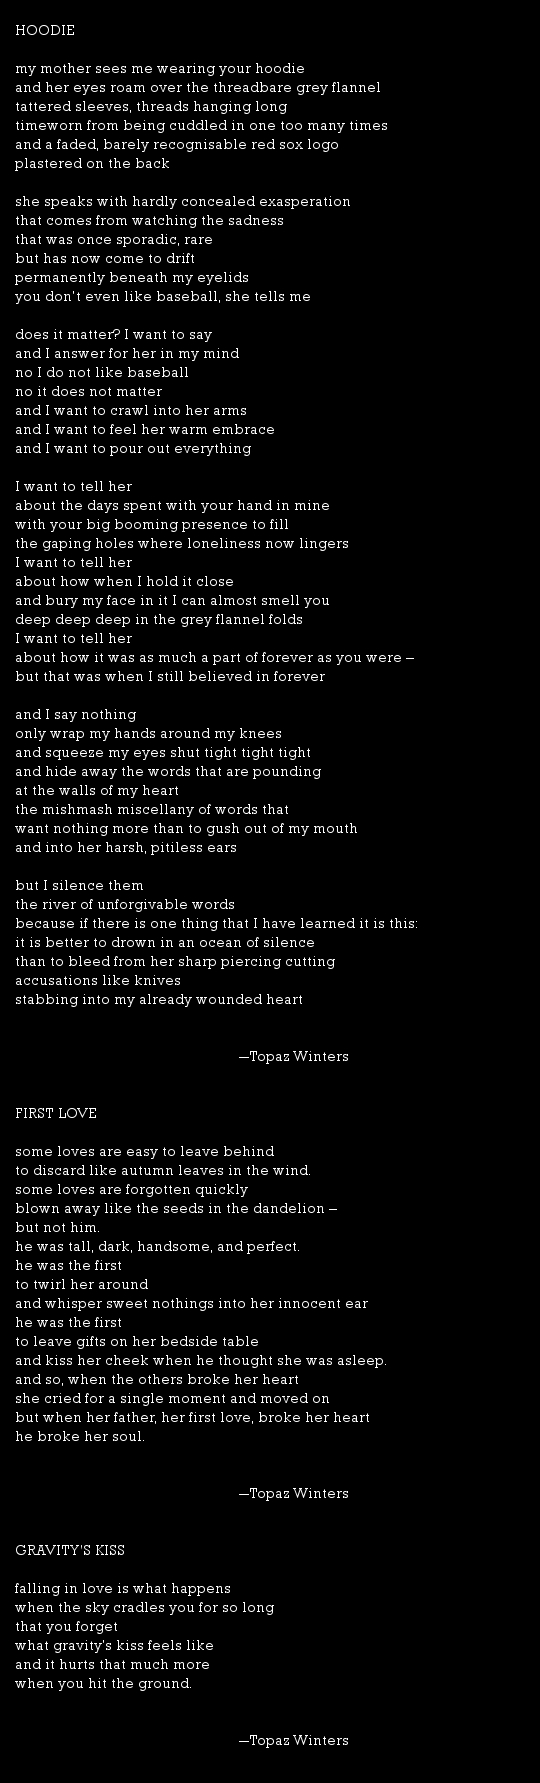 Topaz Winters Poetry